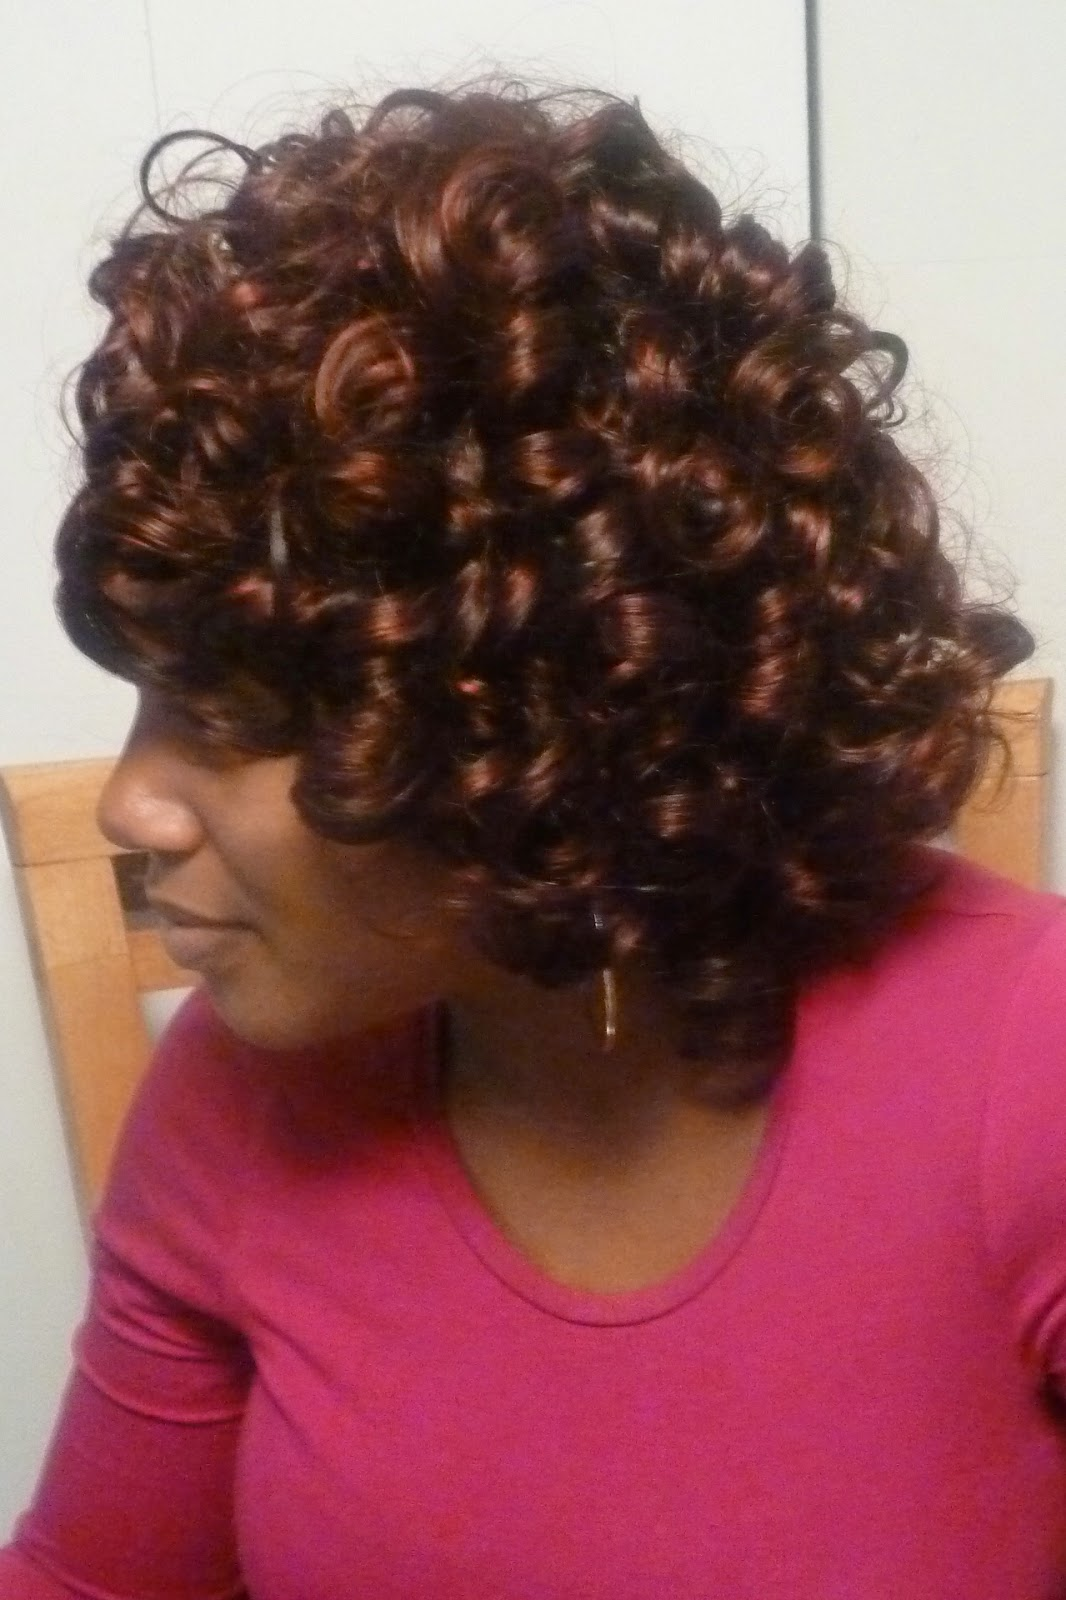 ClemsBeauty Weave With Conrwos Side